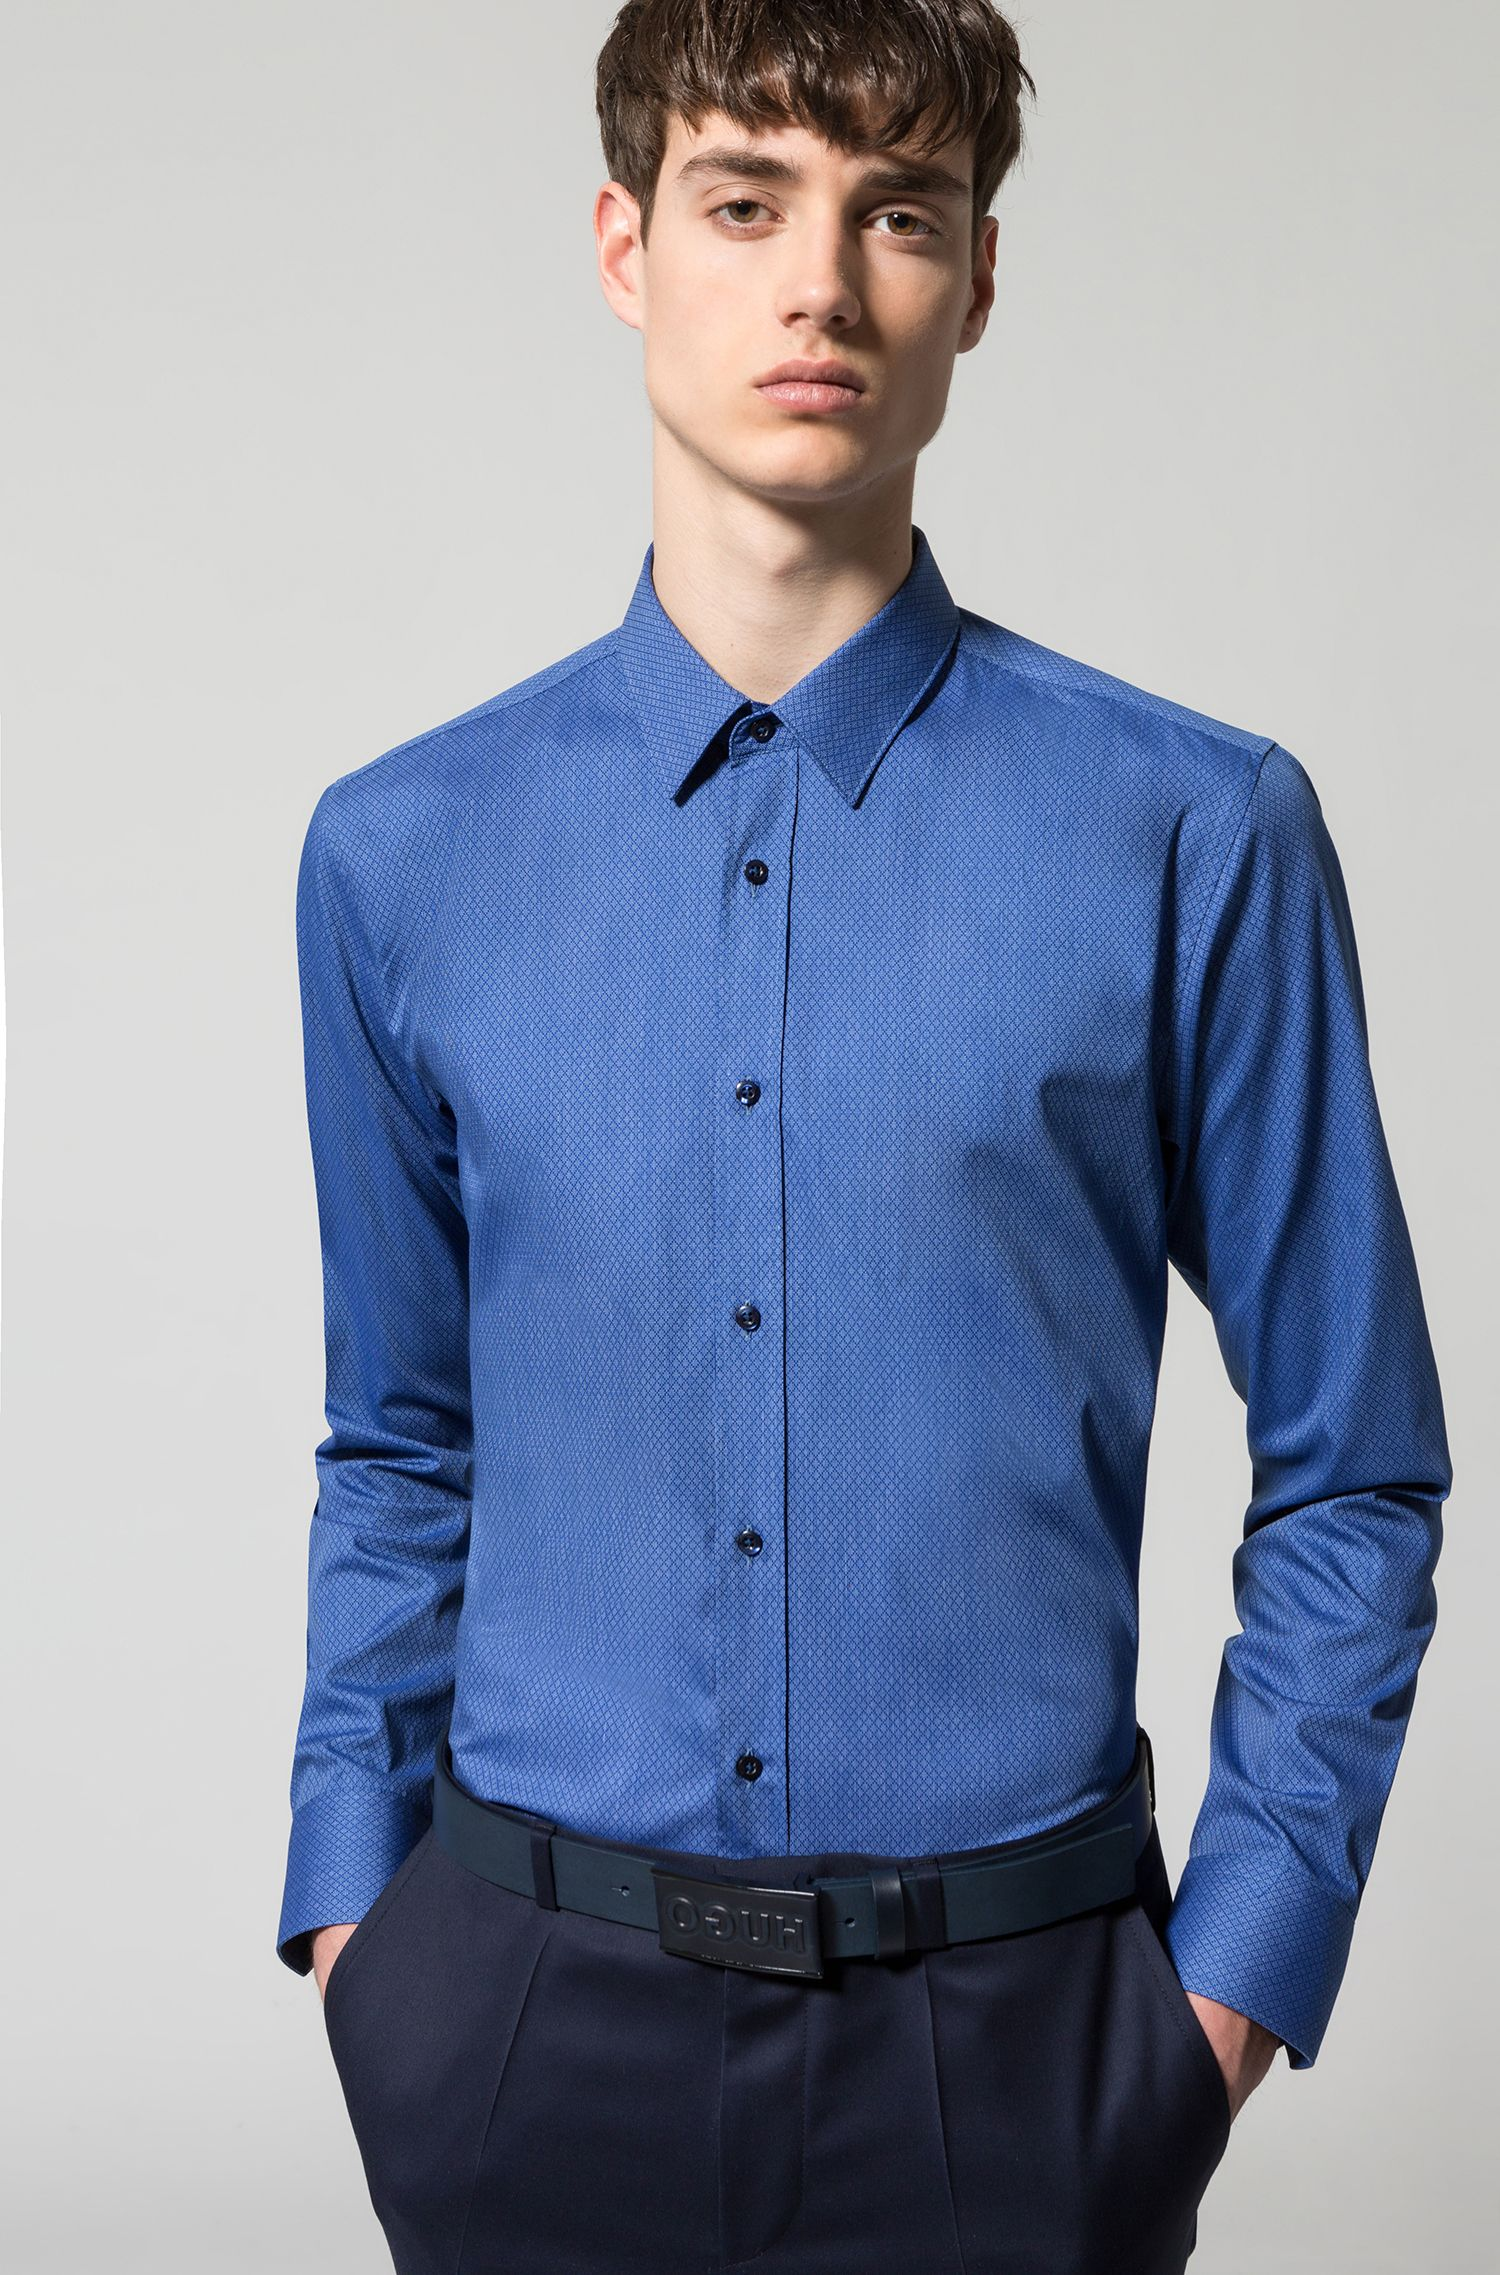 Stretch Cotton Blend Dress Shirt, Extra Slim Fit | Elisha